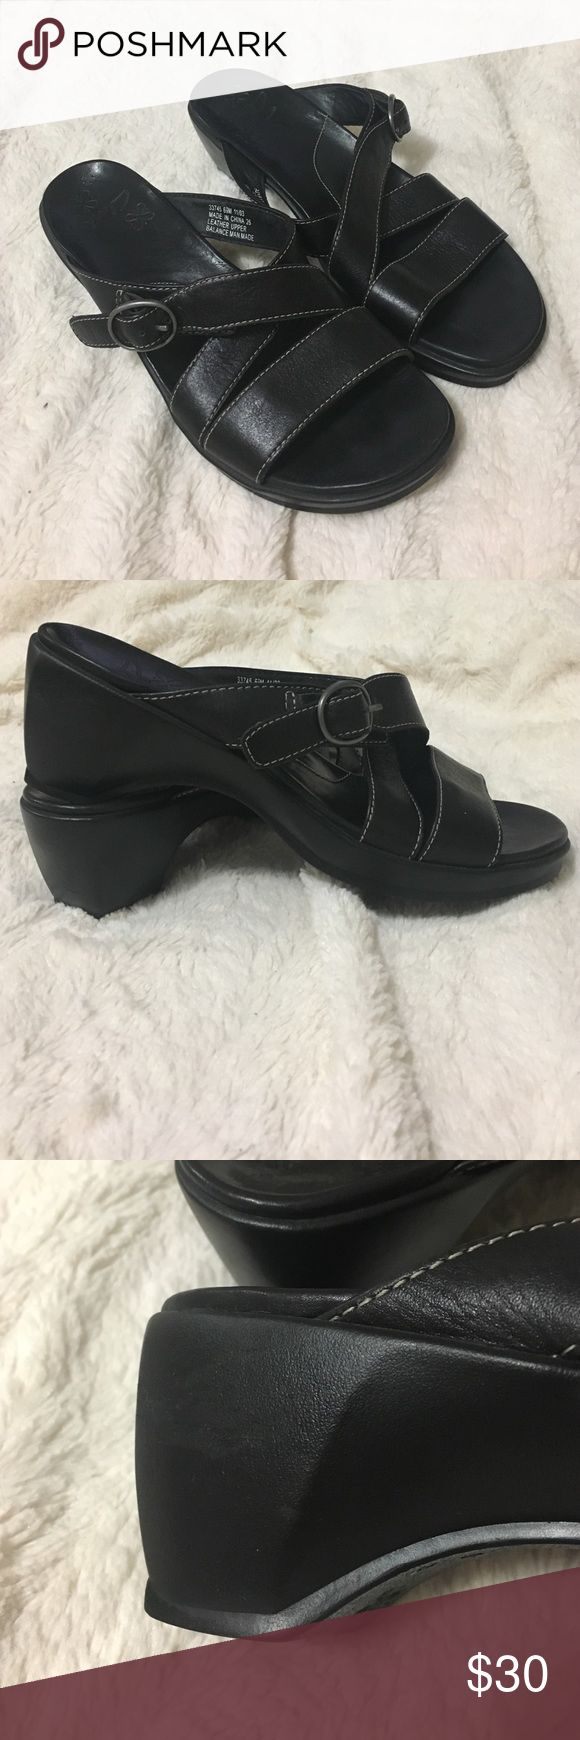 New Clarks Sandals Great condition. No box. Minor scuff on heel of right shoe, see picture. Low heel. Leather Clarks Shoes Sandals